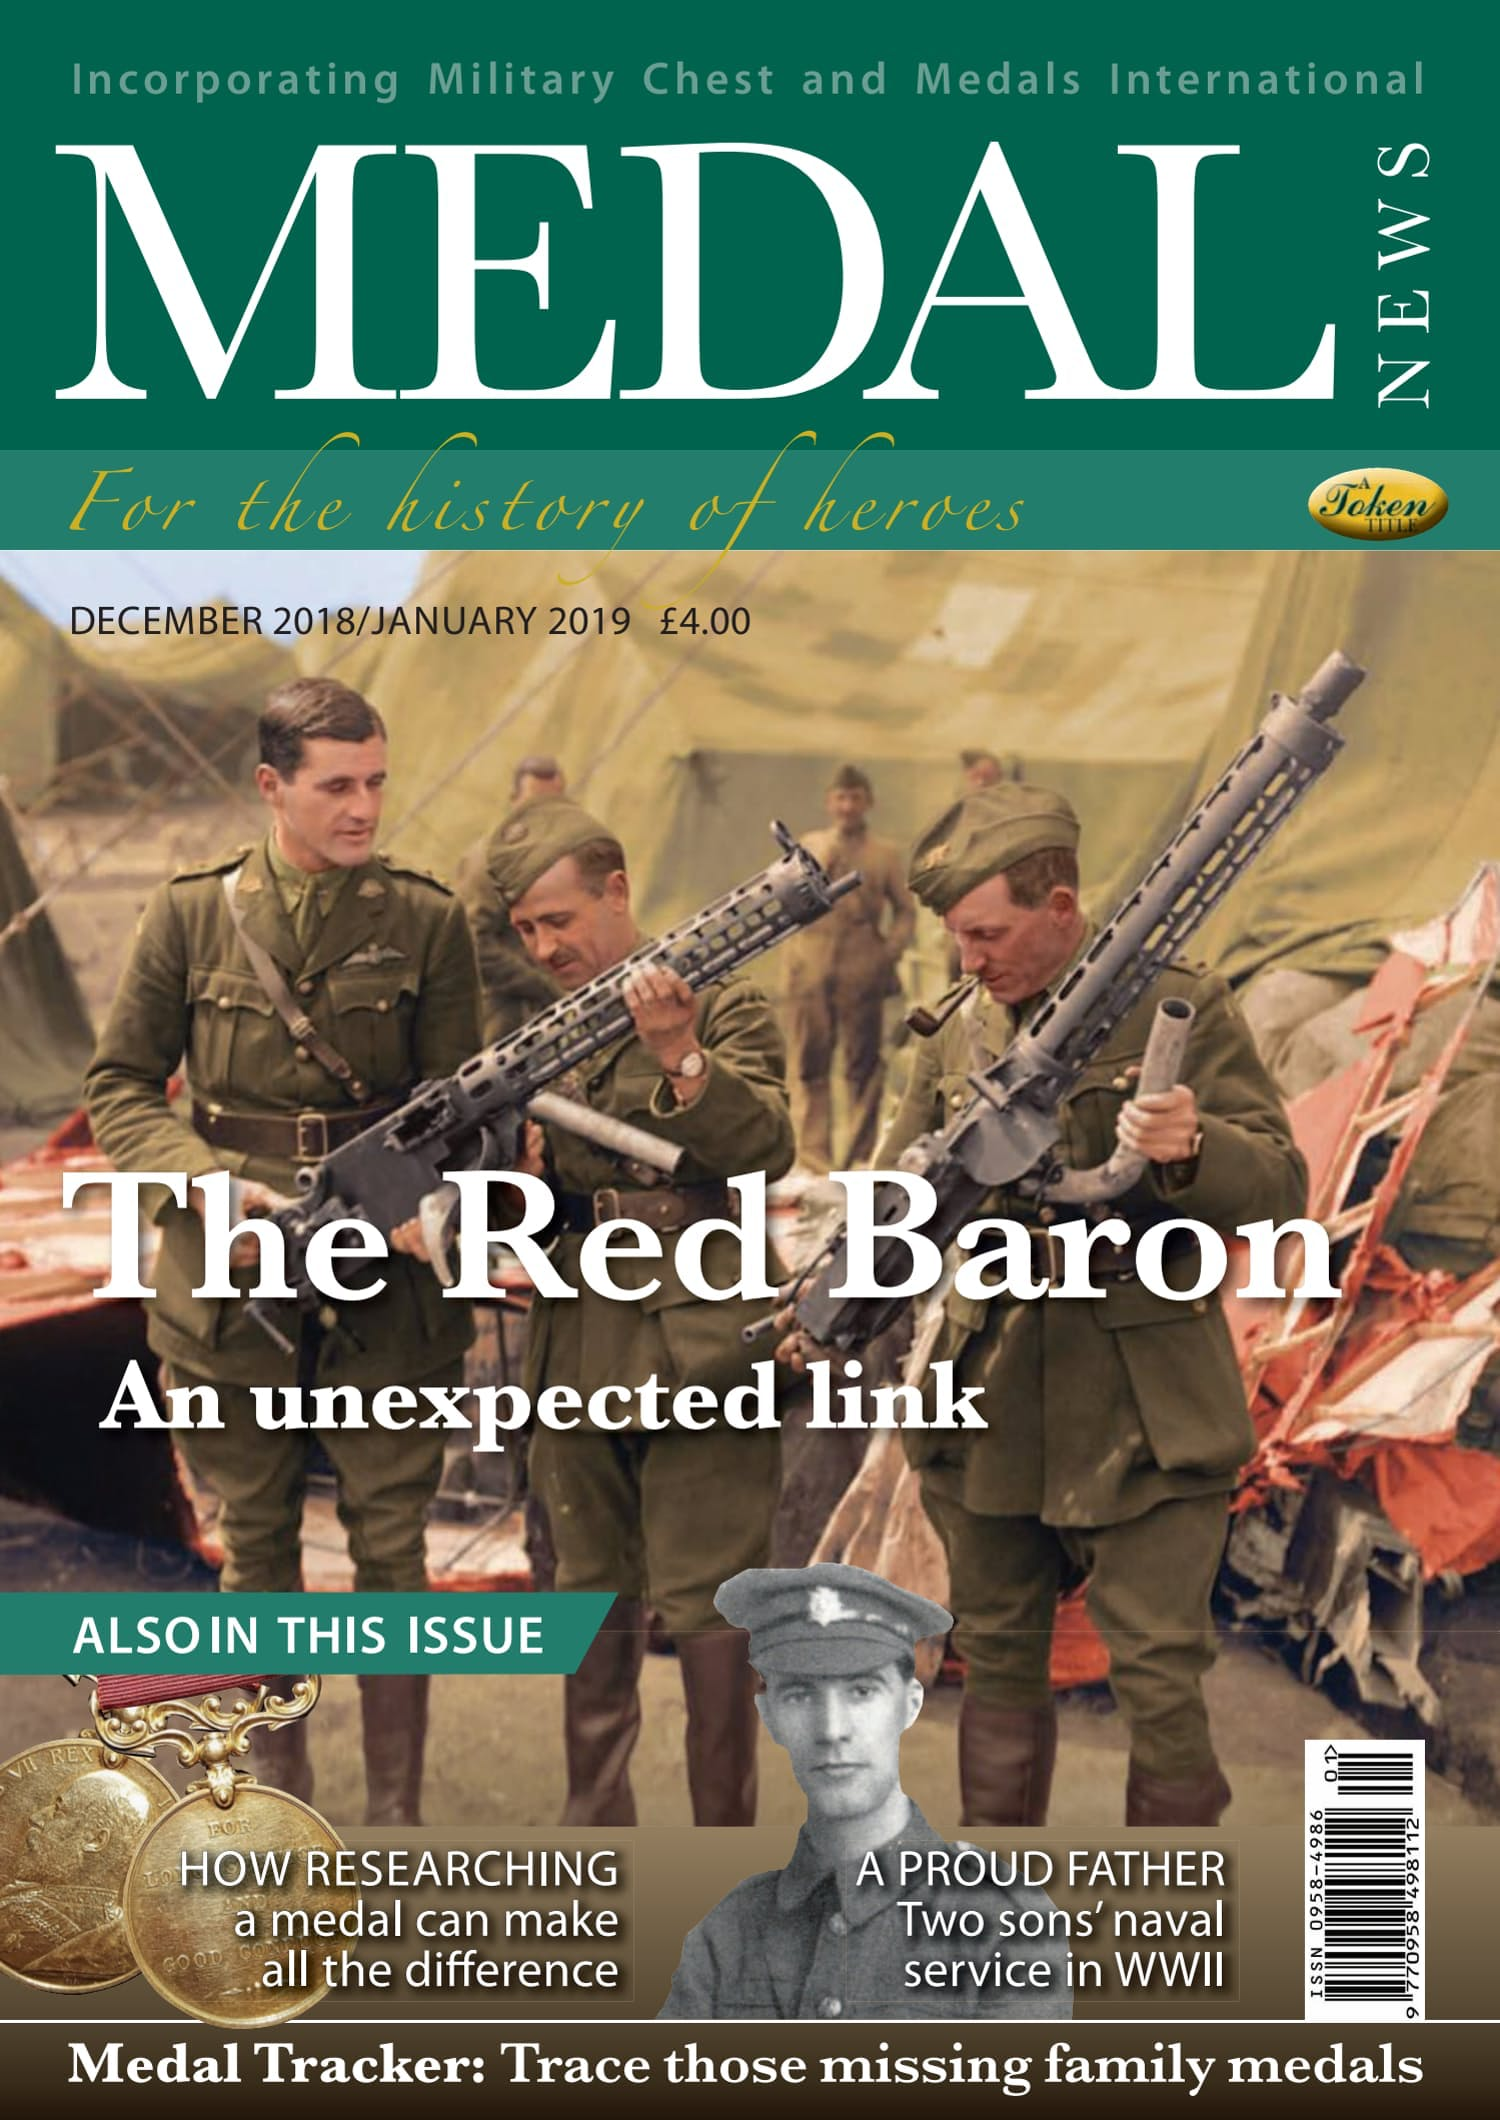 The front cover of Medal News, January 2019 - Volume 57, Number 1